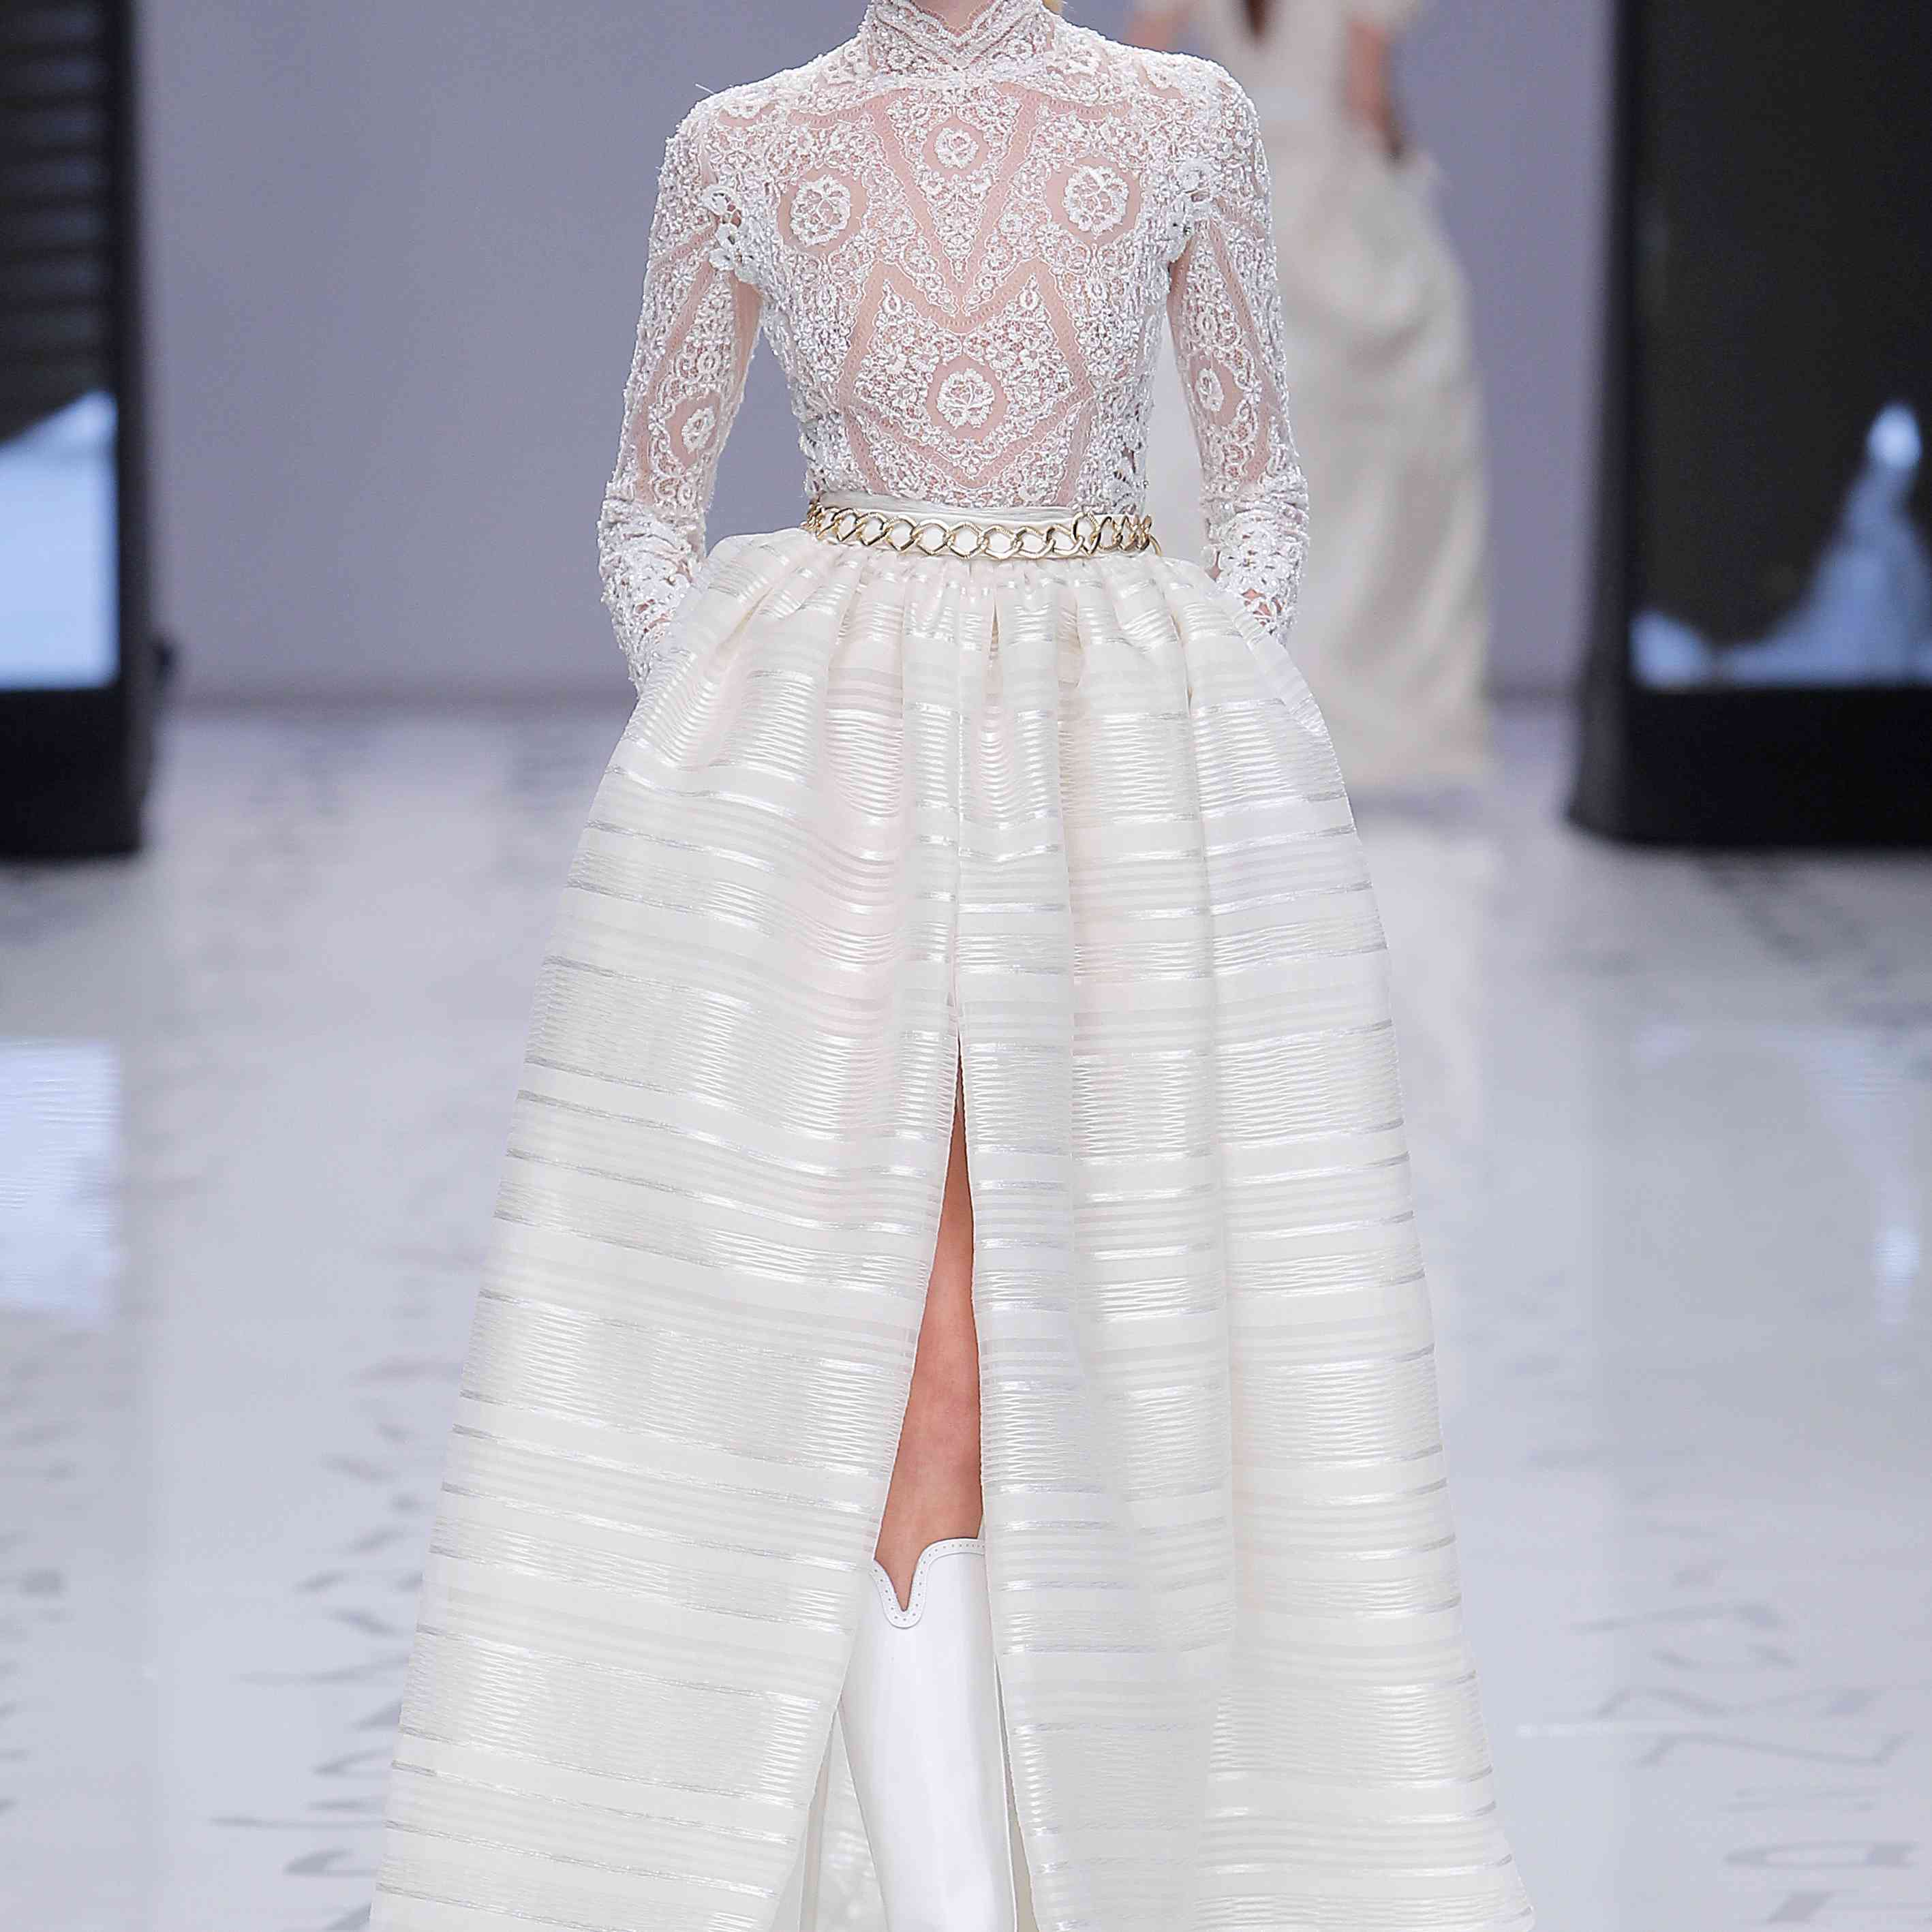 Model in a long-sleeved lace top with a striped organza full skirt with a front slit and a gold chain belt